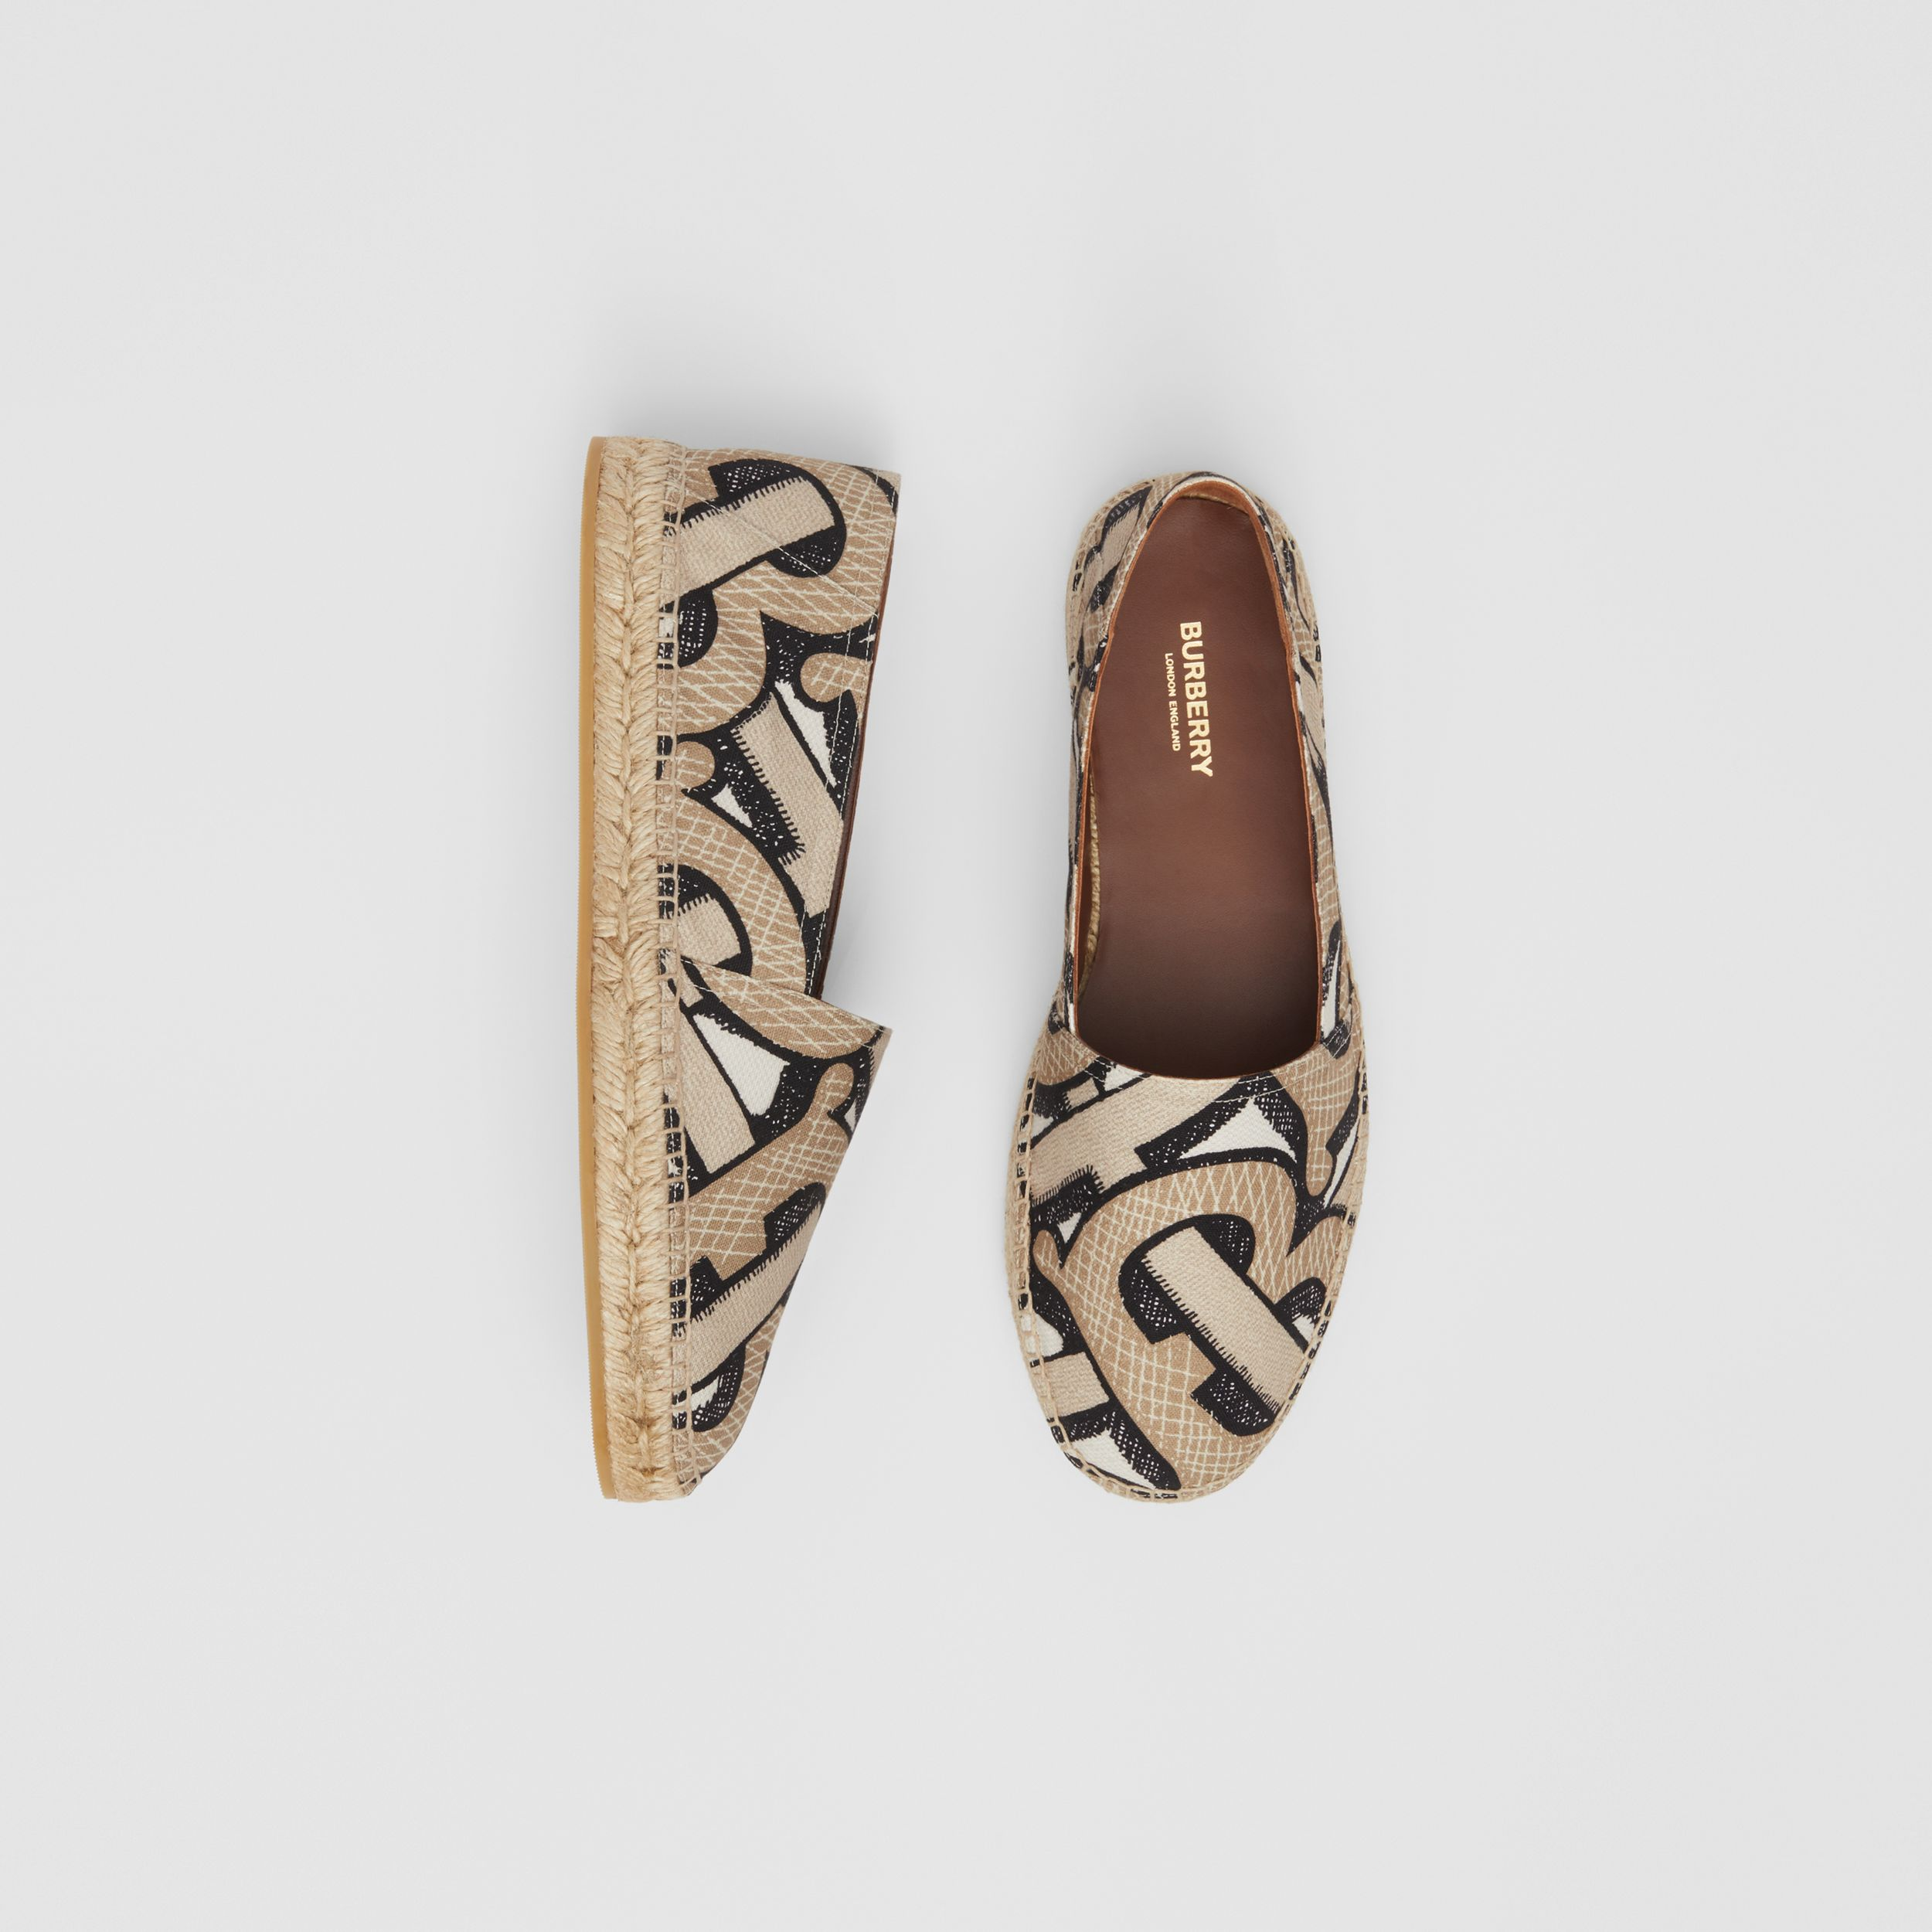 Monogram Print Cotton Canvas Espadrilles in Dark Beige | Burberry Canada - 1